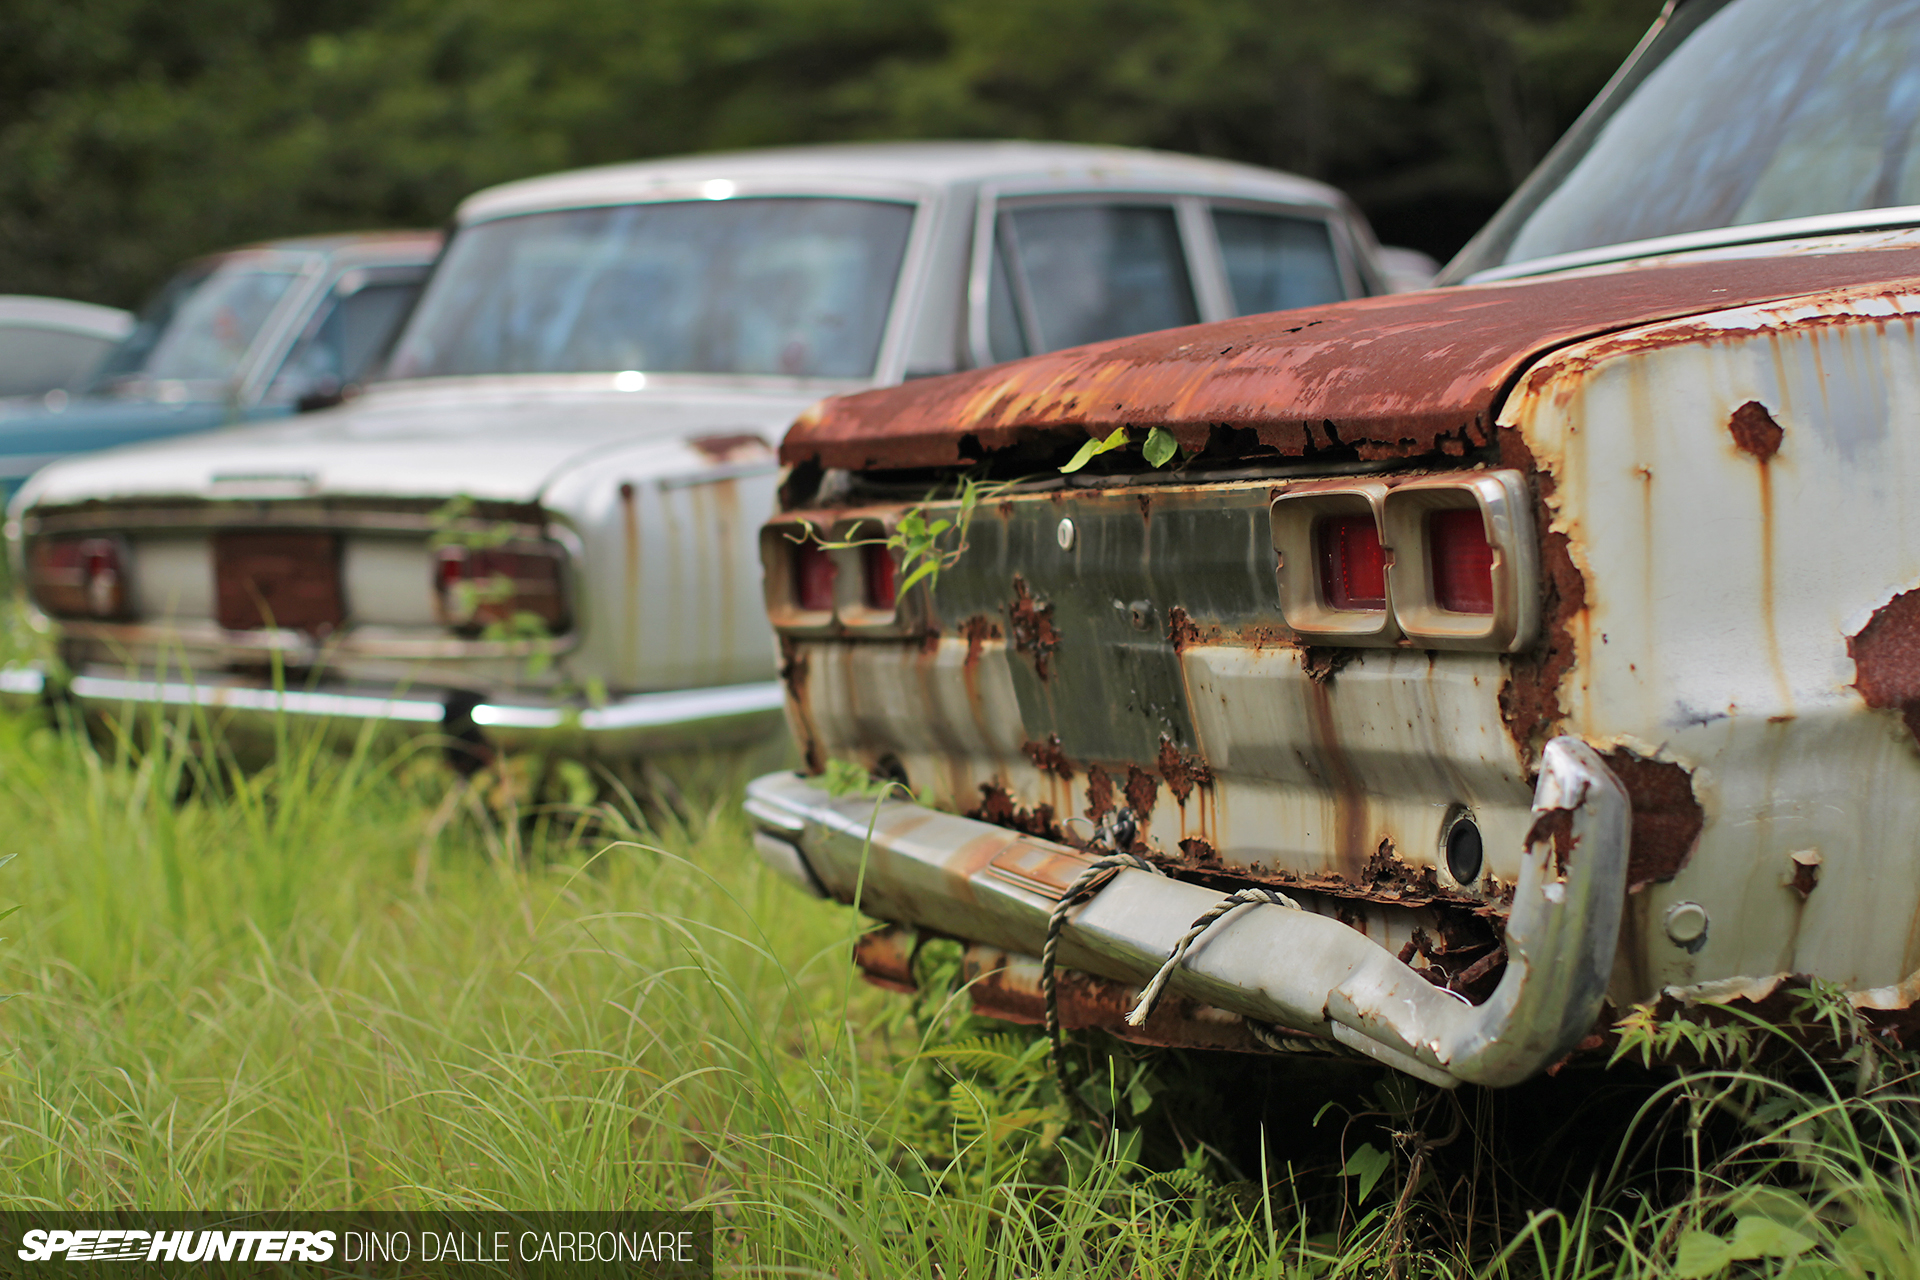 Kyusha Cemetery: Where Old JDM Cars Go To Die.